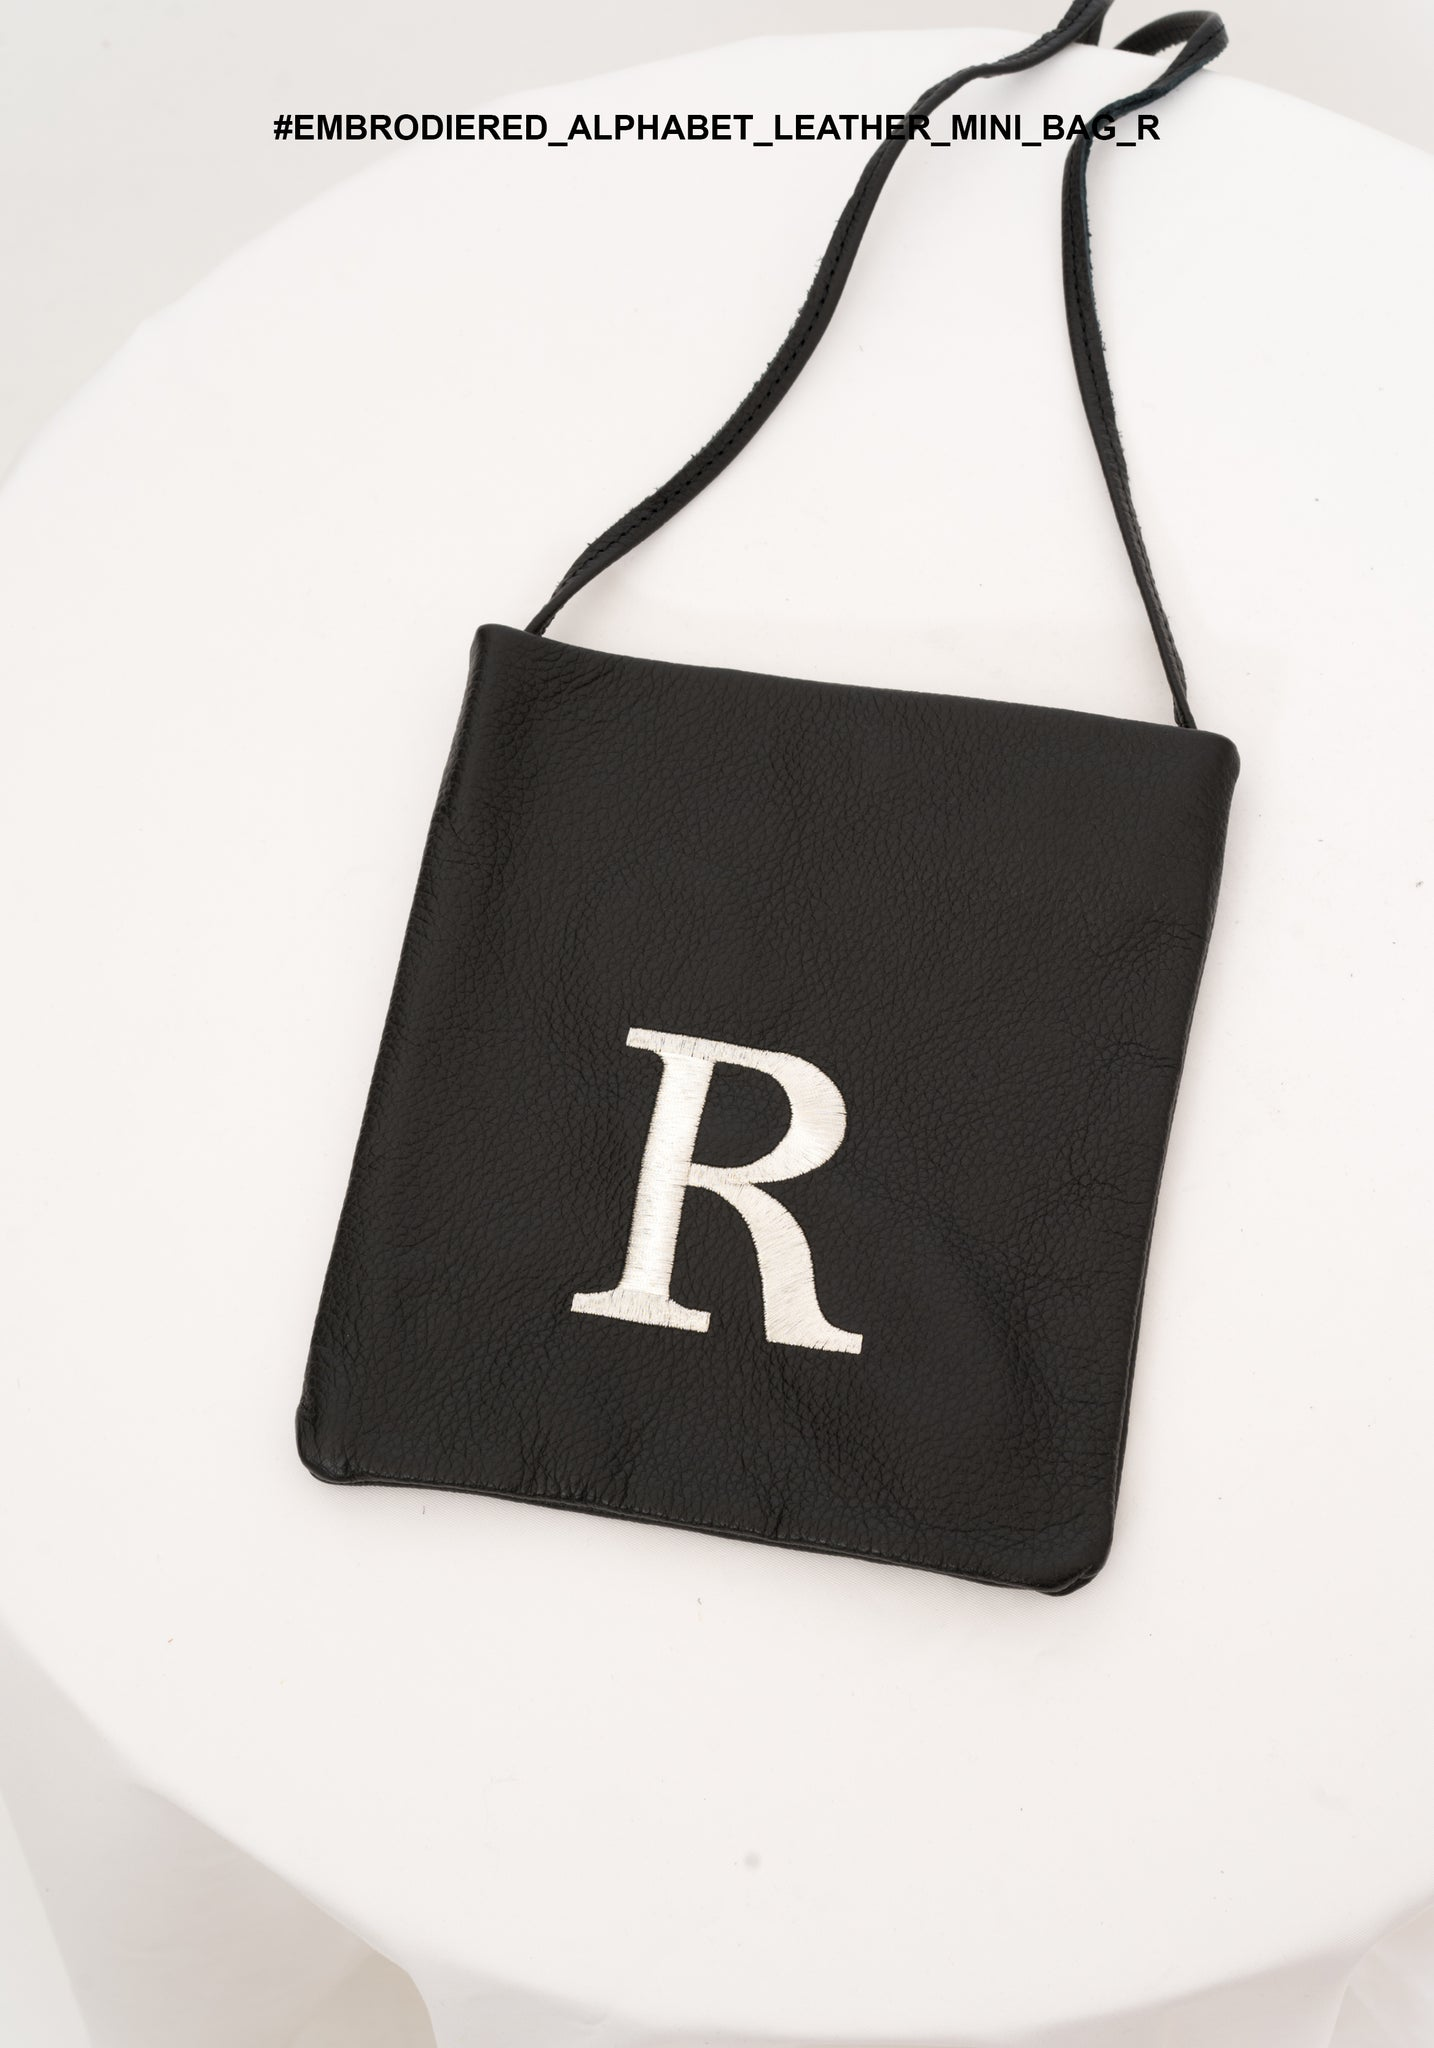 Embroidered Alphabet Leather Mini Bag R - whoami